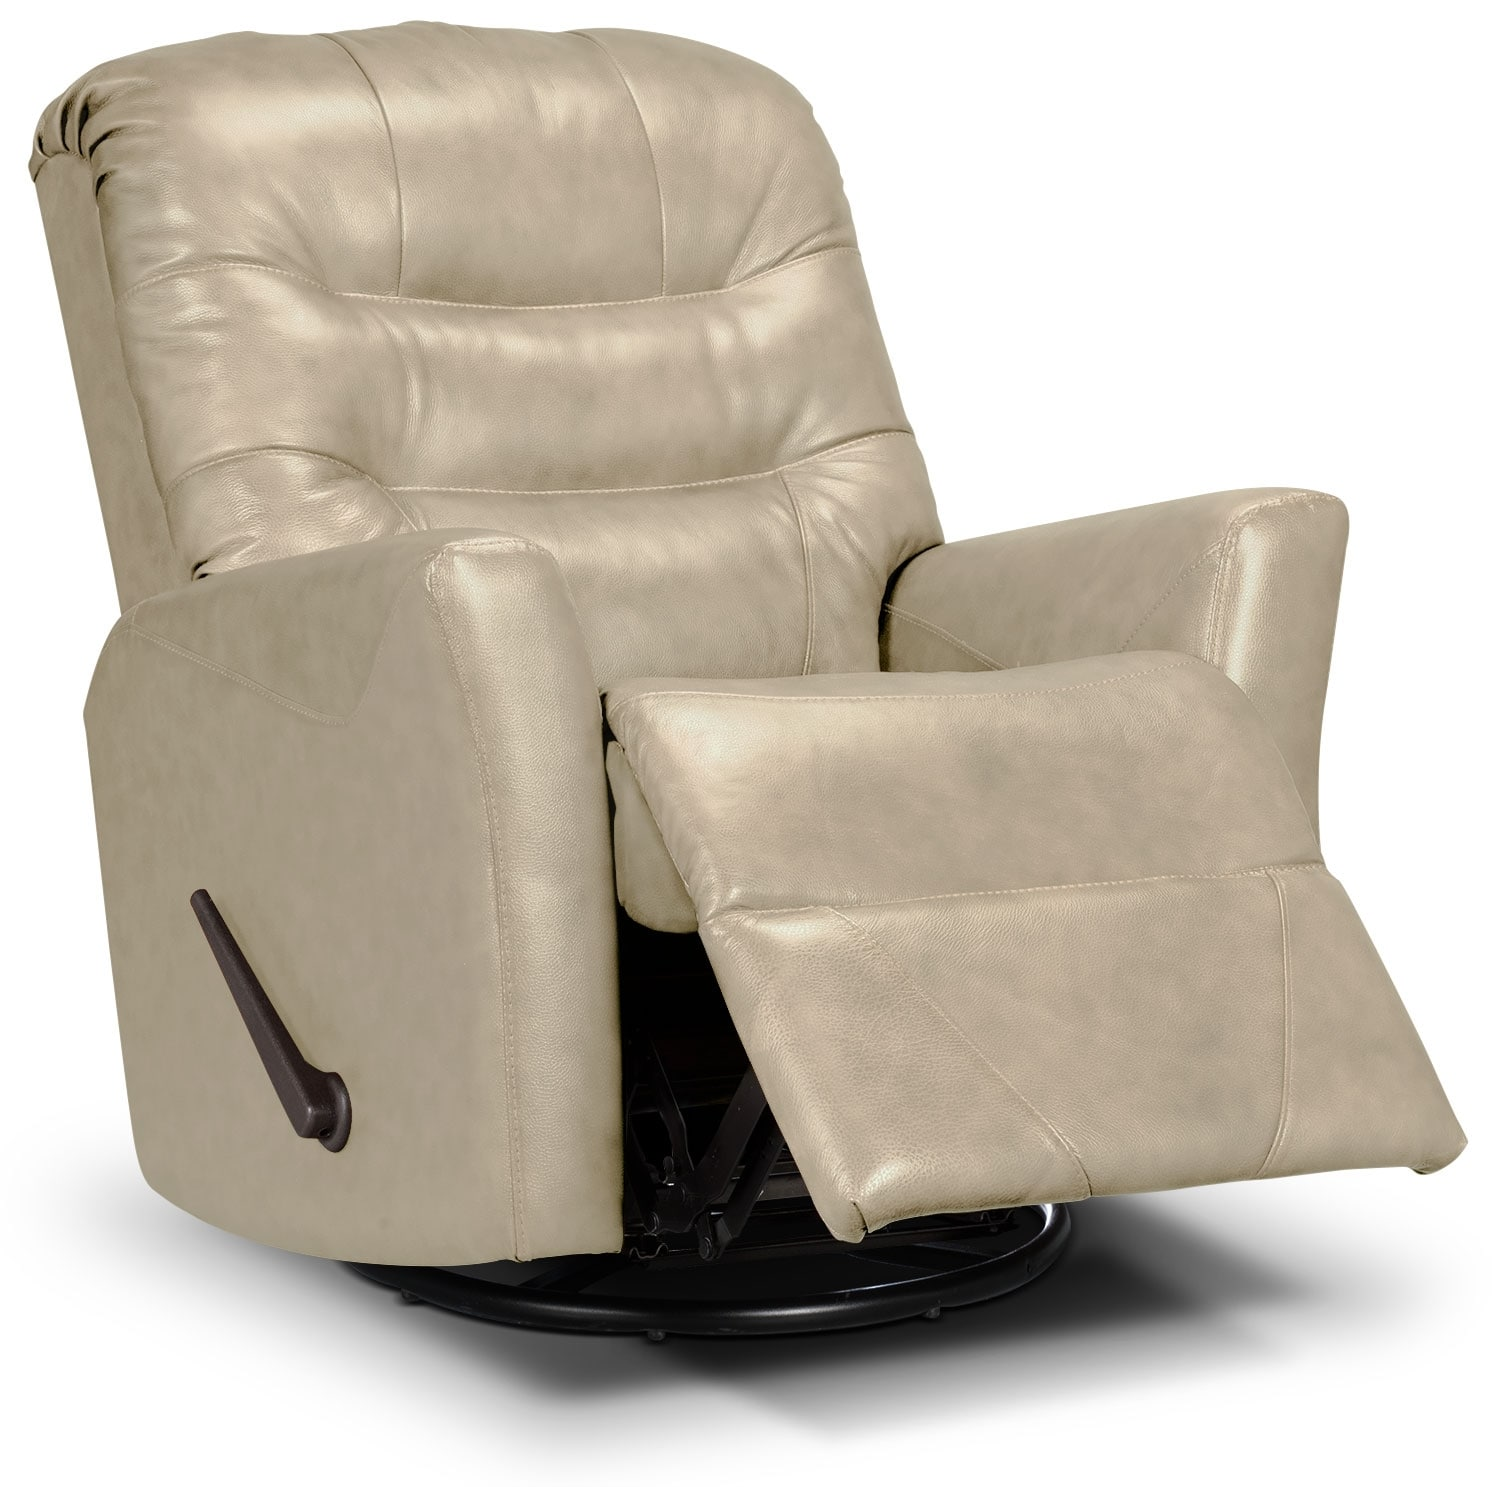 Designed2B Recliner 4560 Genuine Leather Swivel Glider Recliner - Taupe